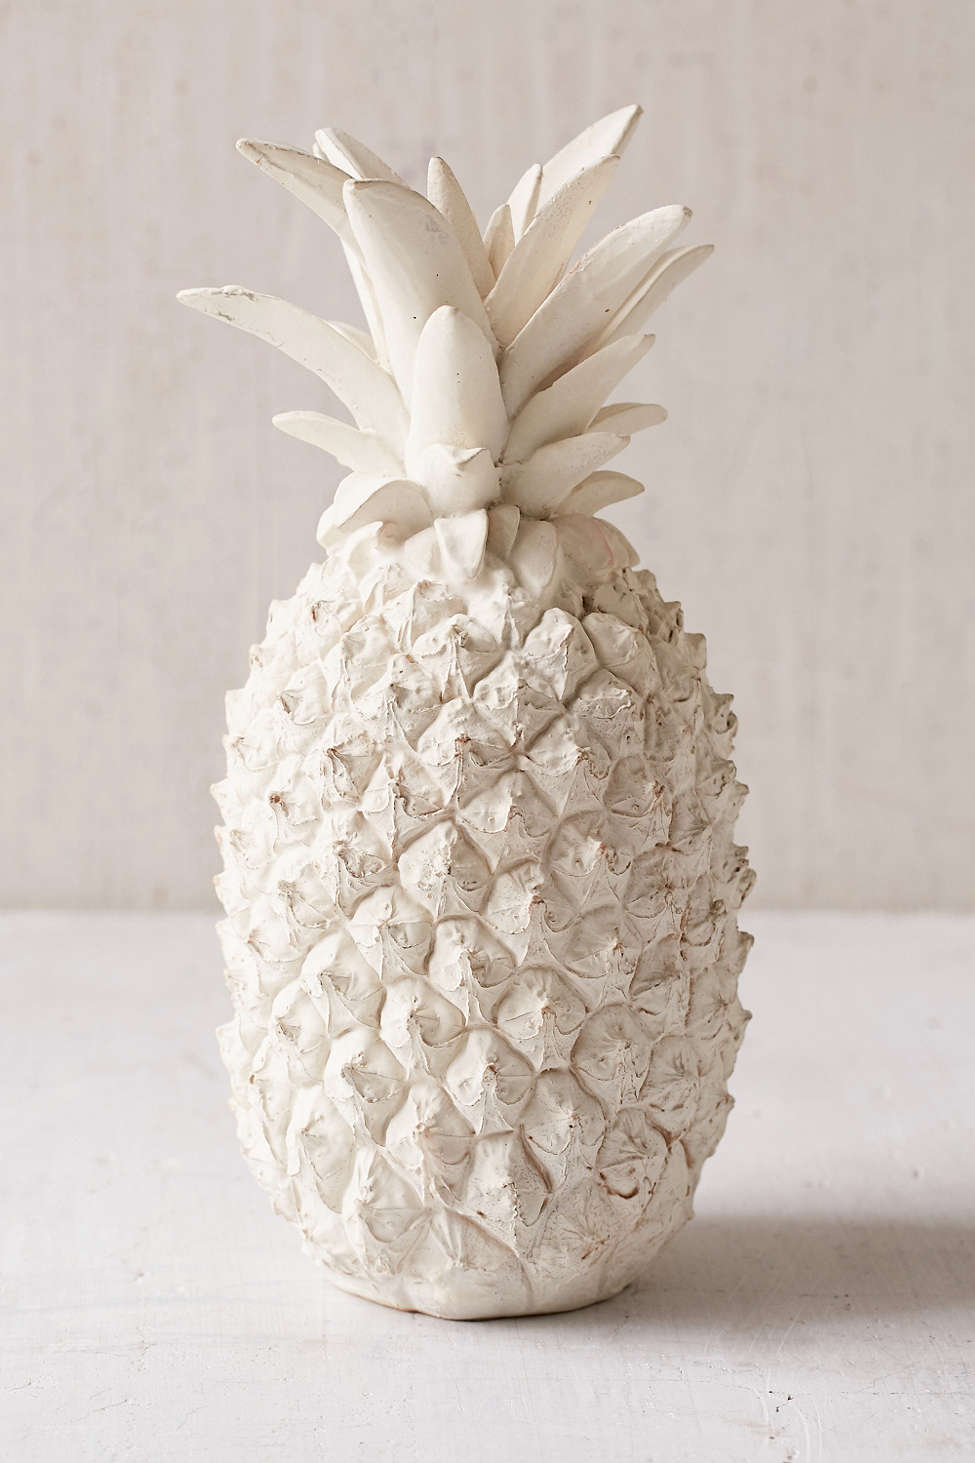 Pineapple sculpture from Urban Outfitters